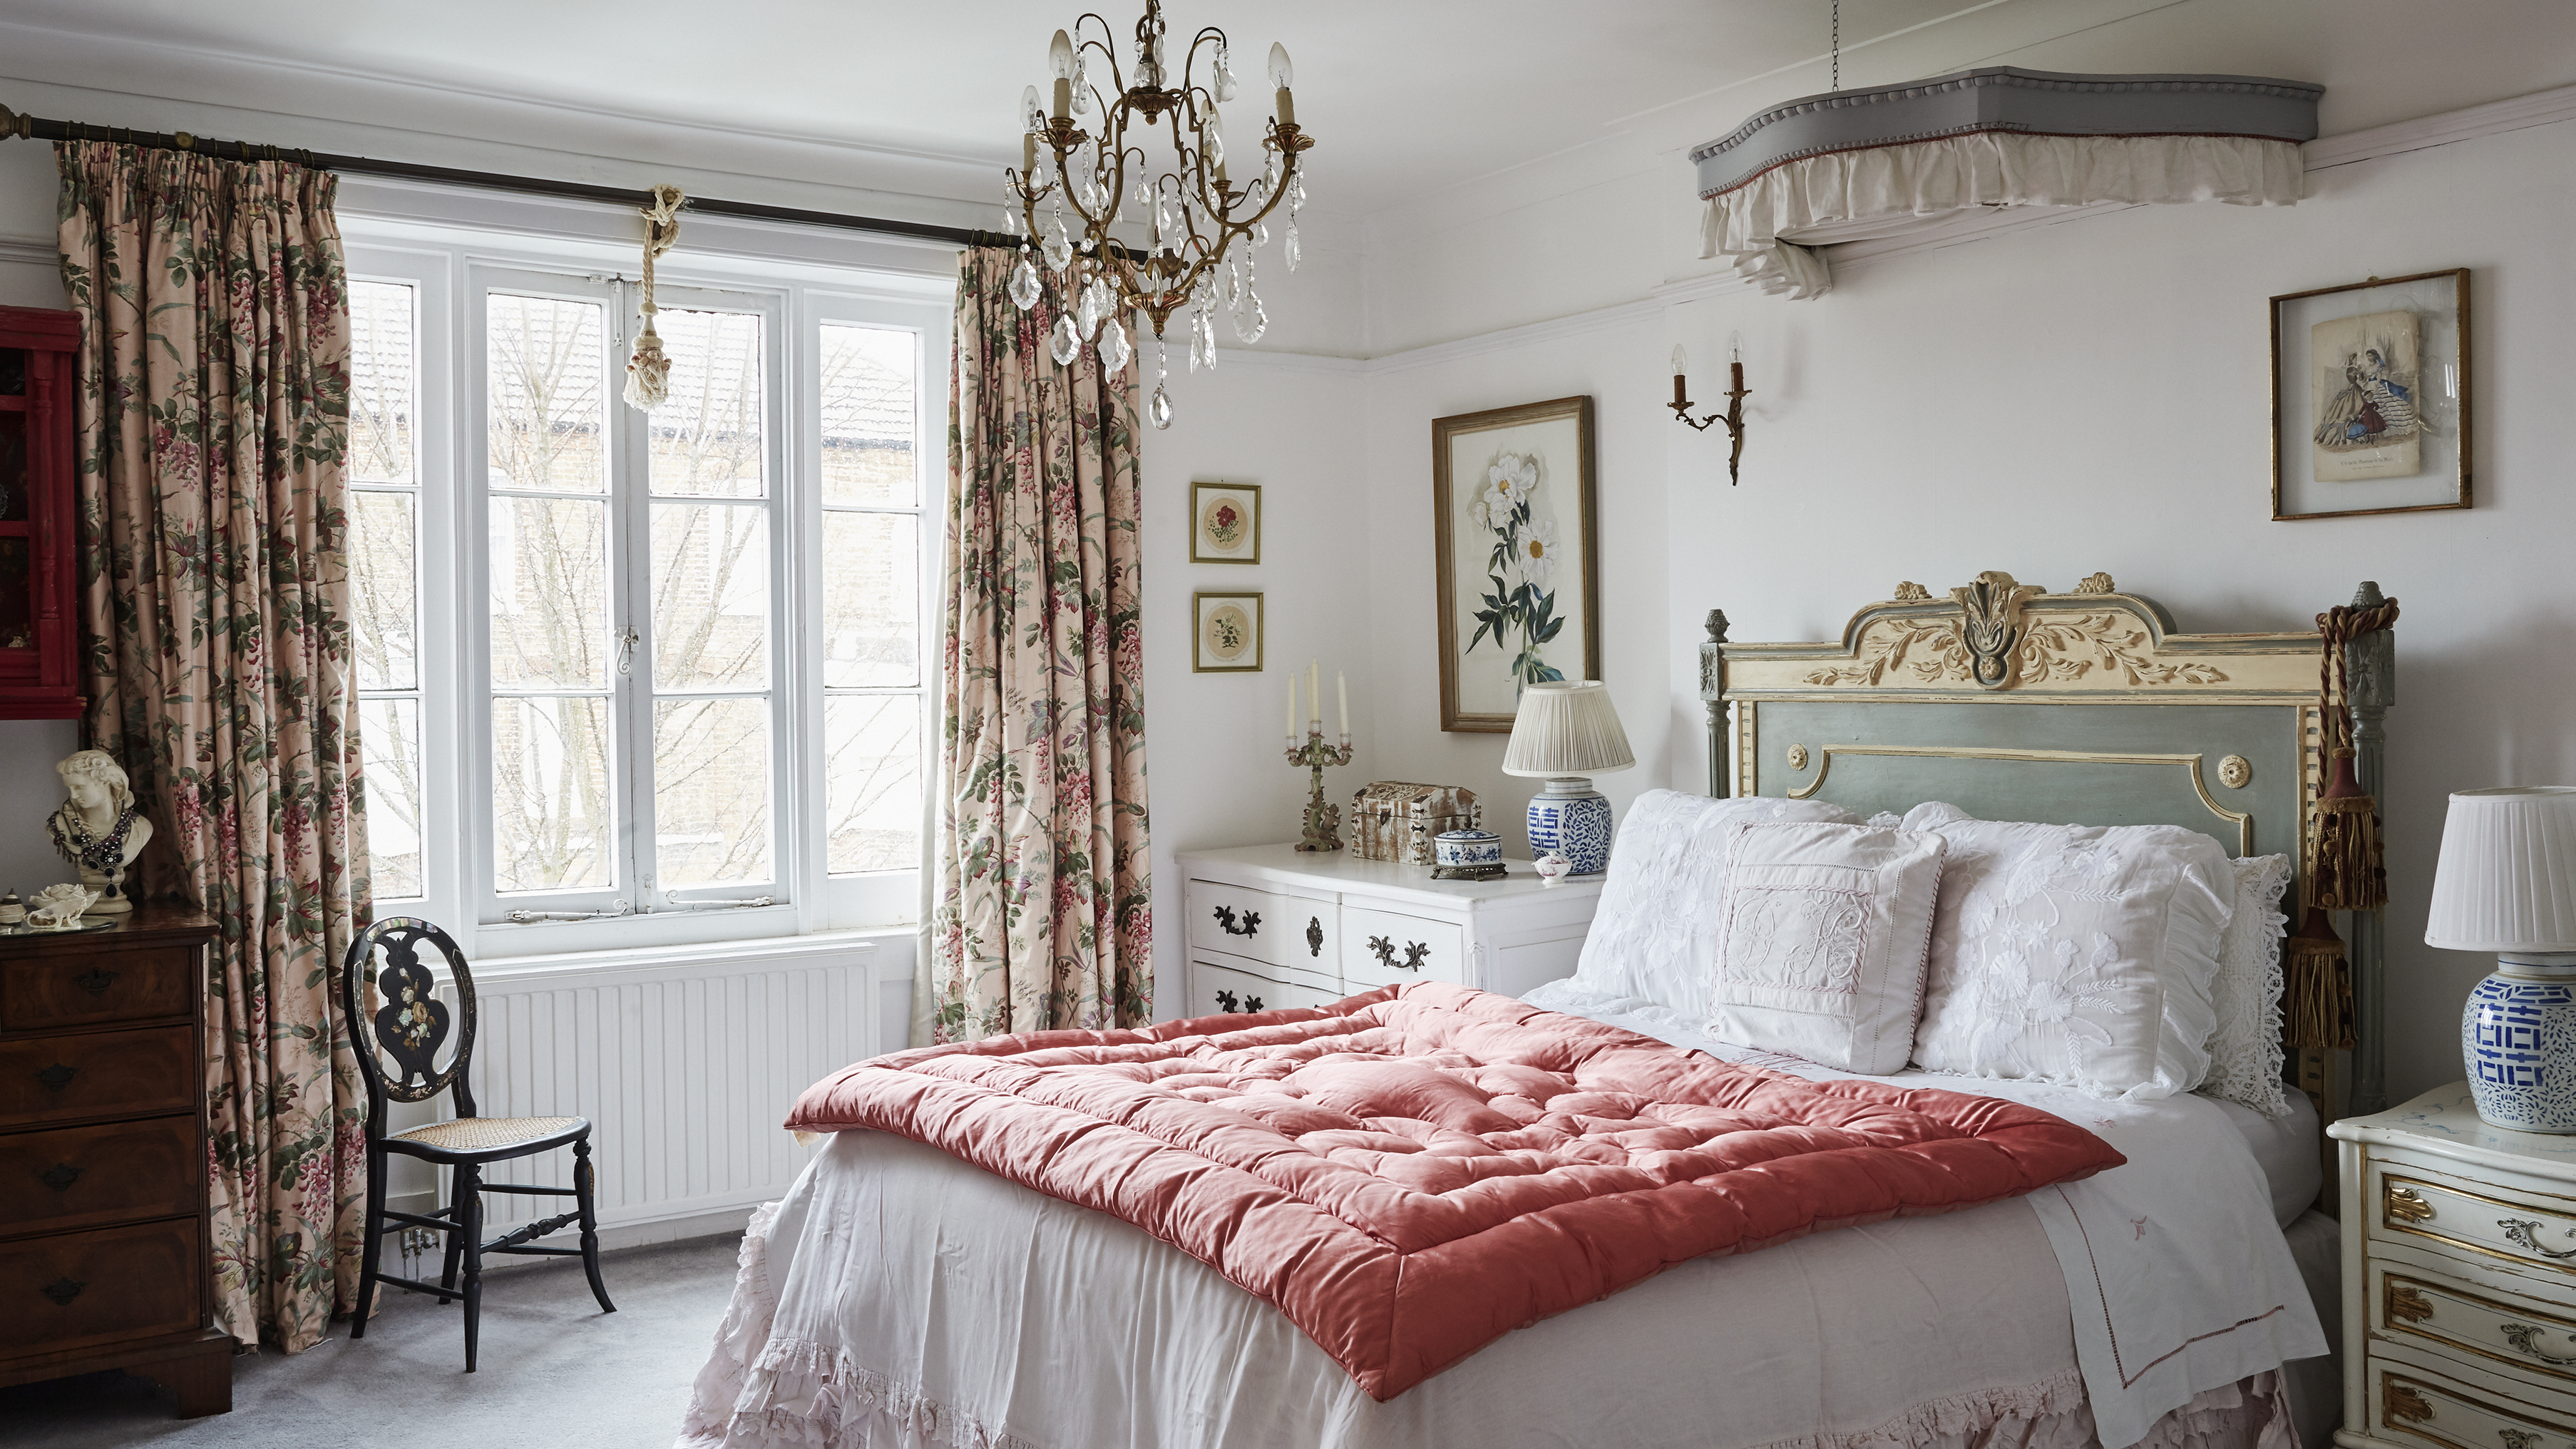 14 Vintage Bedroom Ideas For Your Country Style Boudoir Real Homes